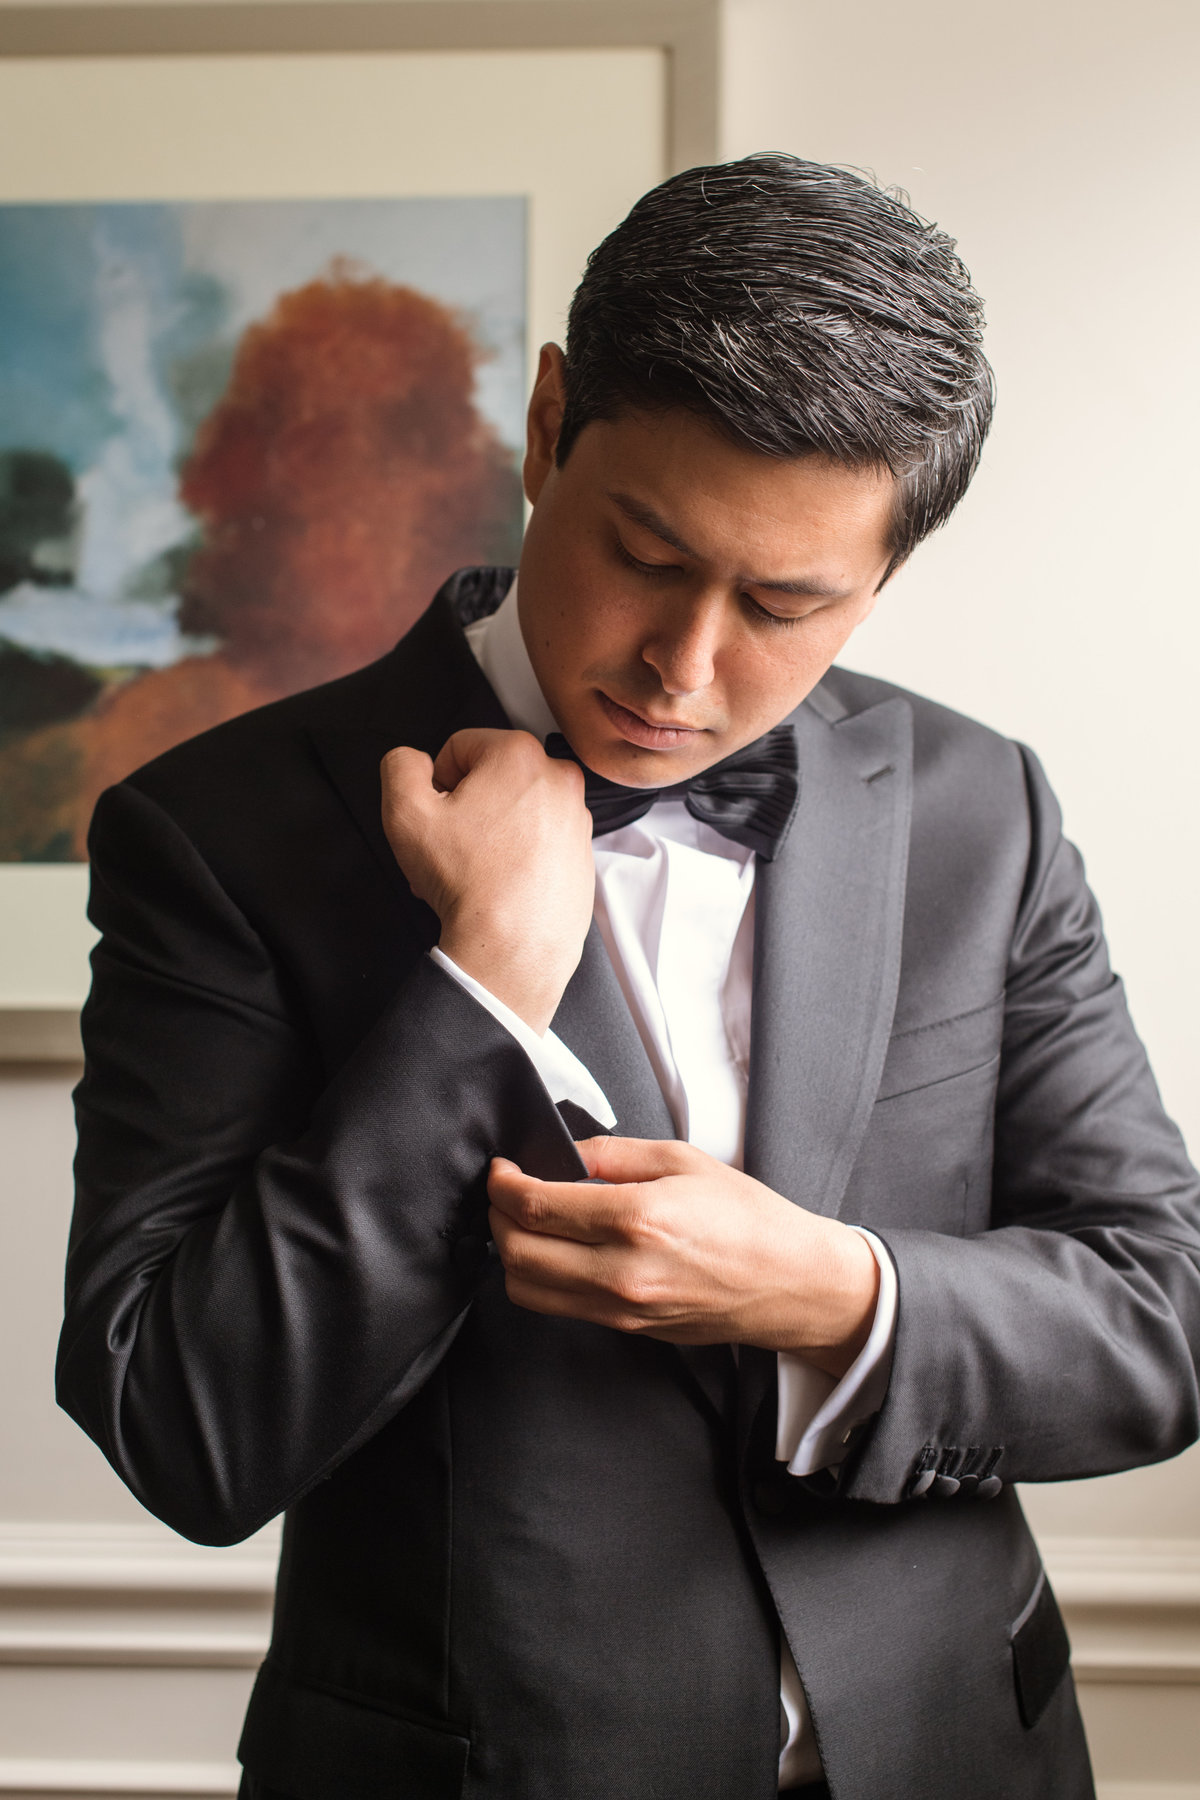 wedding photo of groom adjusting cufflinks at The Garden City Hotel